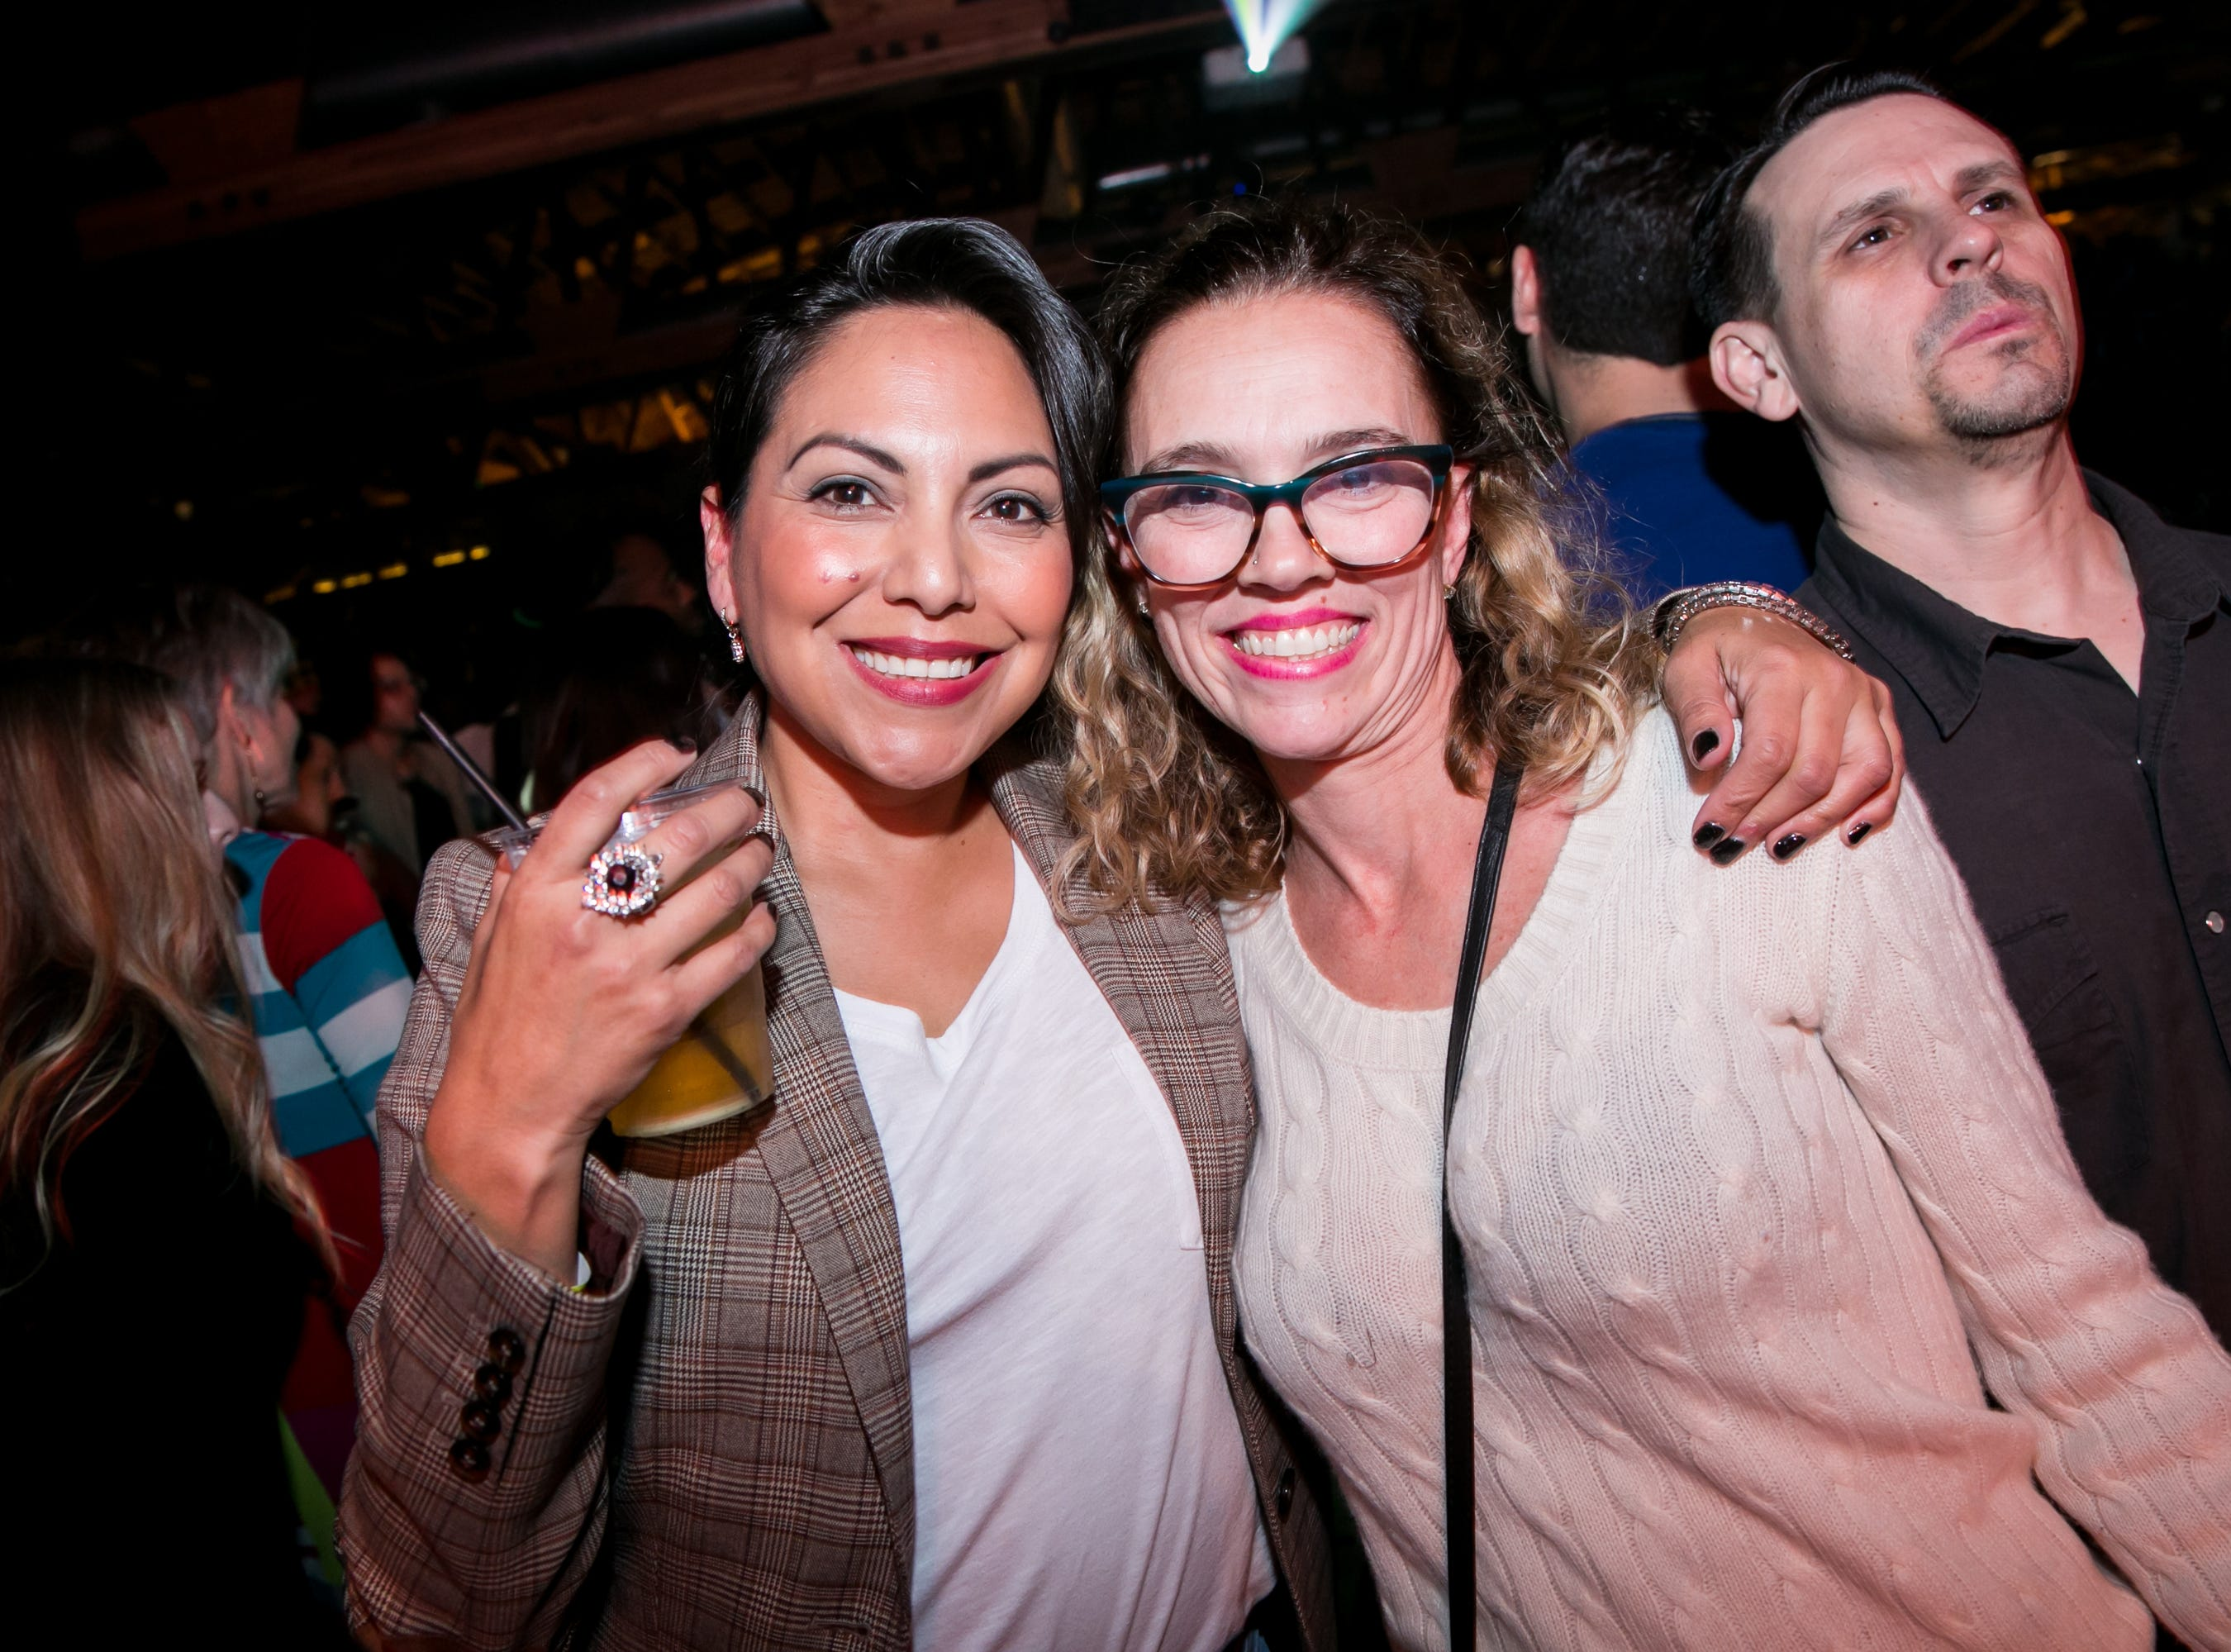 These two looked lovely during Old School - 90's Hip Hop Dance Party at The Van Buren on Friday, November 30, 2018.